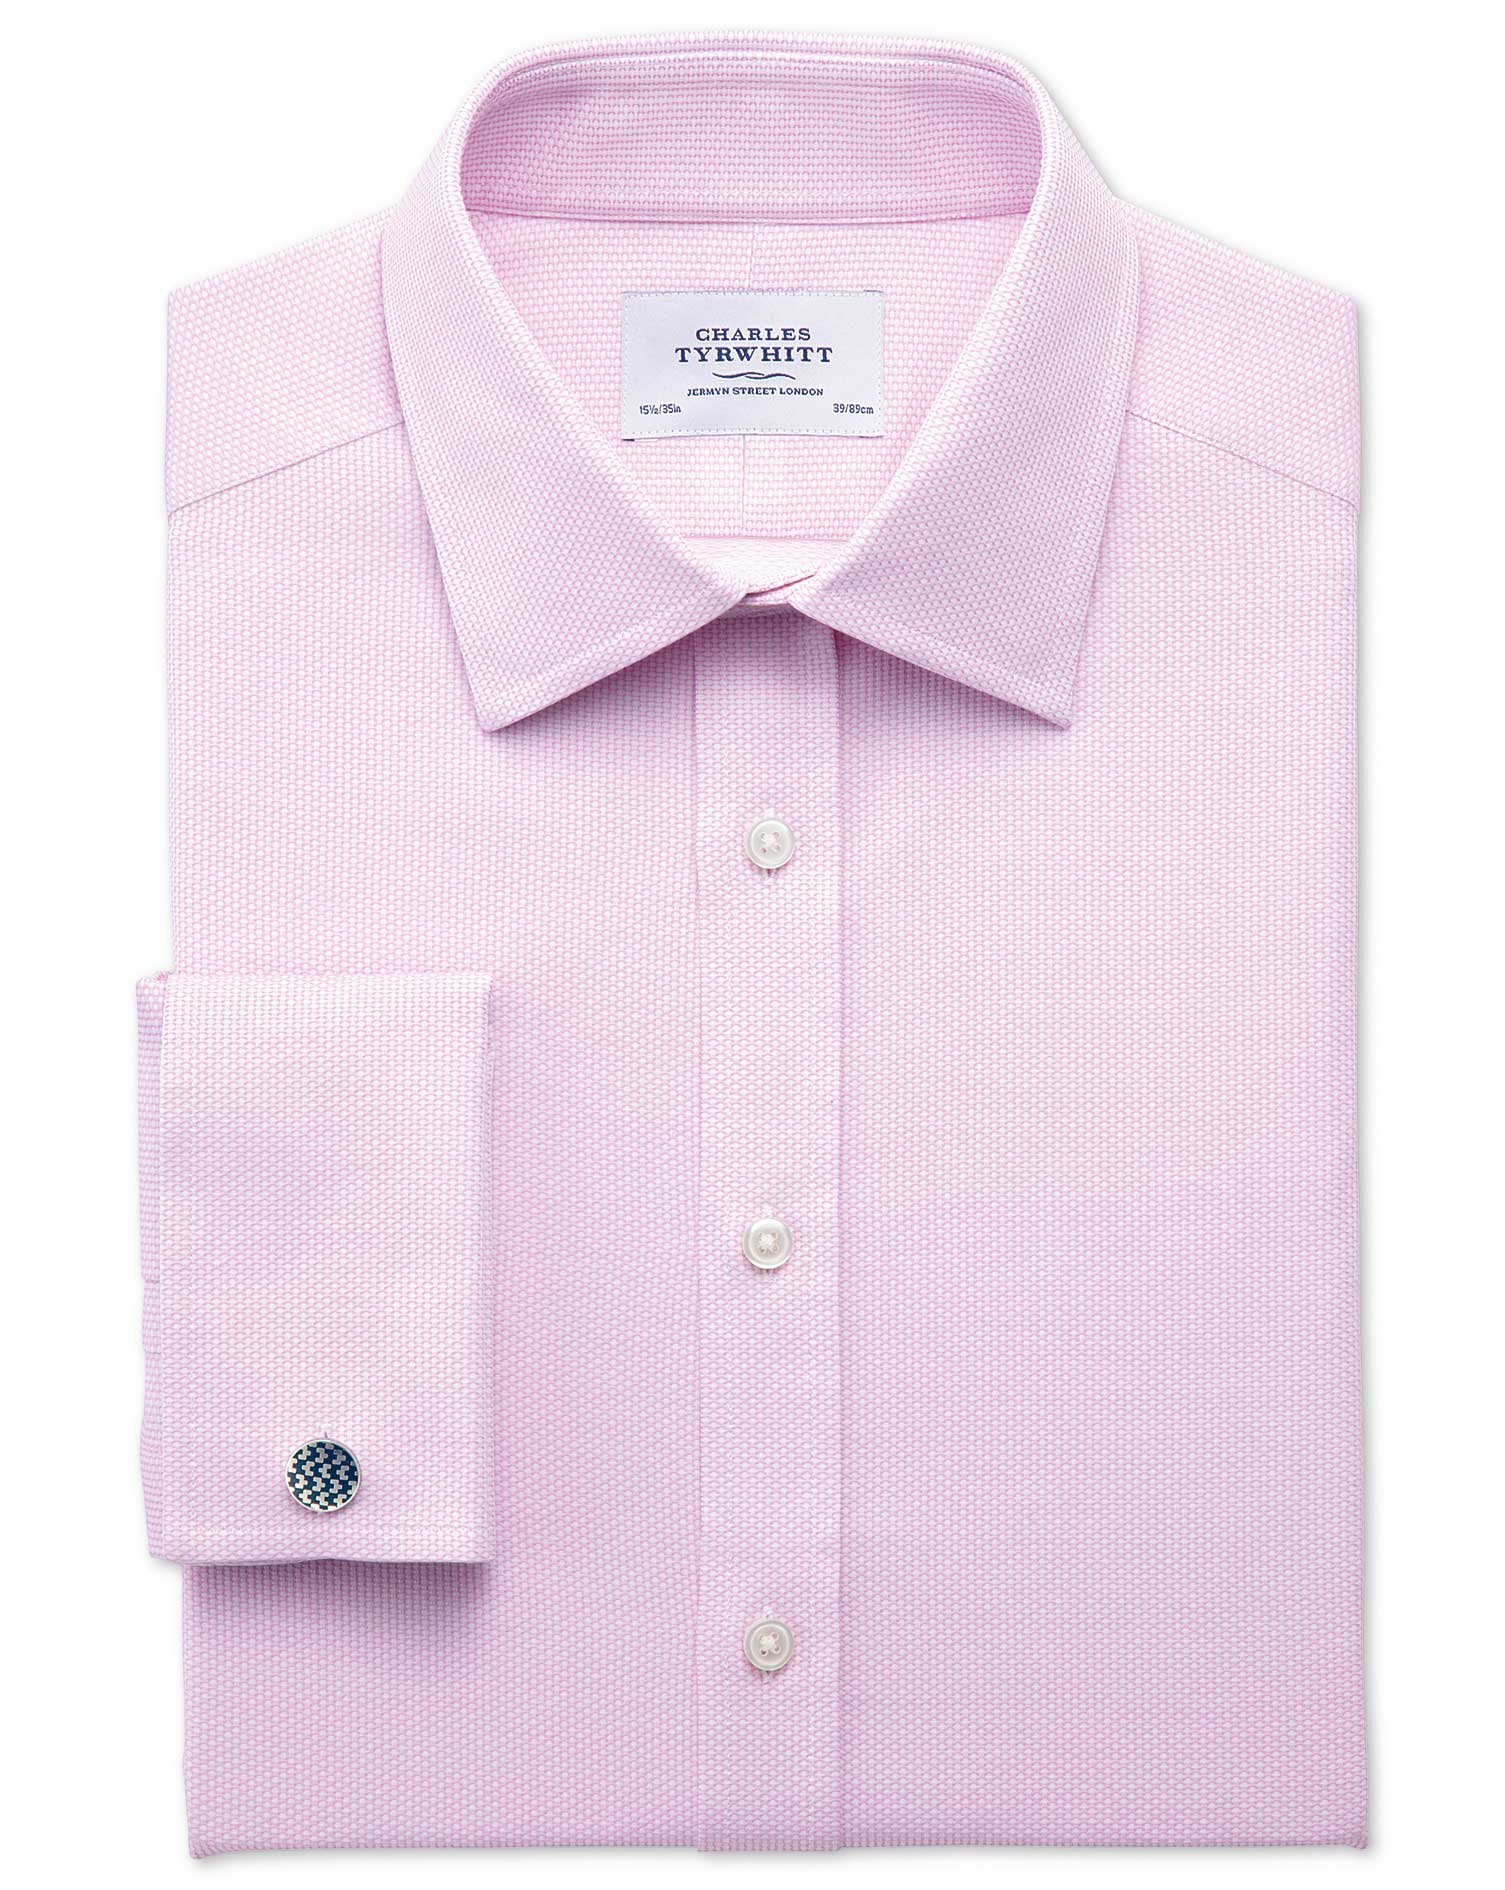 Extra Slim Fit Egyptian Cotton Diamond Texture Pink Formal Shirt Single Cuff Size 15/35 by Charles T